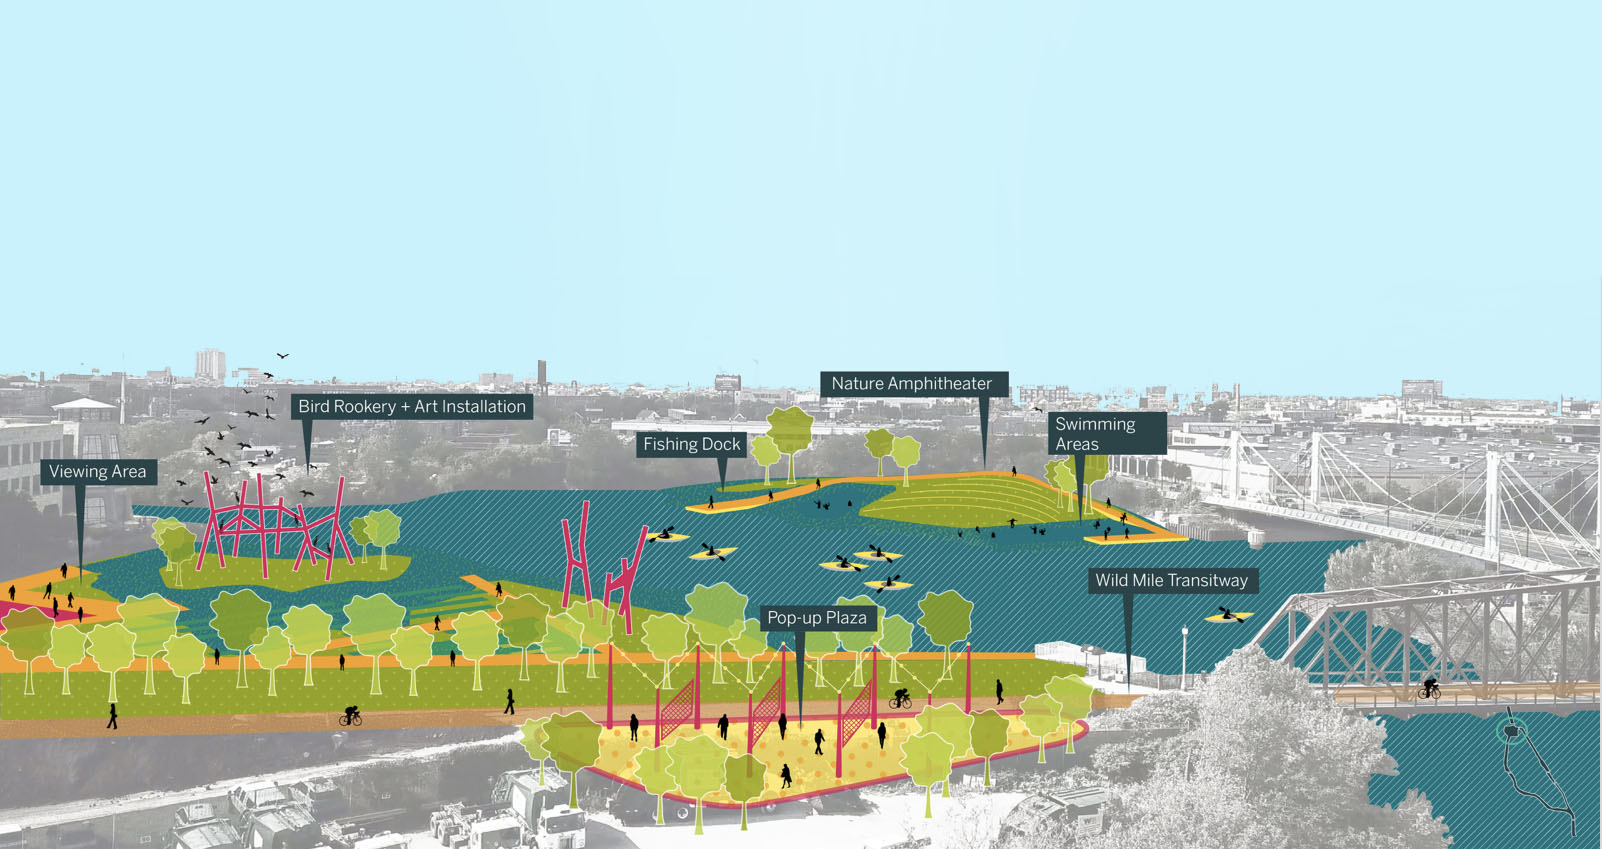 The Goal - The goal of the Wild Mile Chicago Framework Plan is to create a new environment for (1) habitat, (2) recreation, and (3) education.The community's input and feedback is vital to creating new access to the river, educational and recreational opportunities, in addition to the implementation of ecology and habitat.